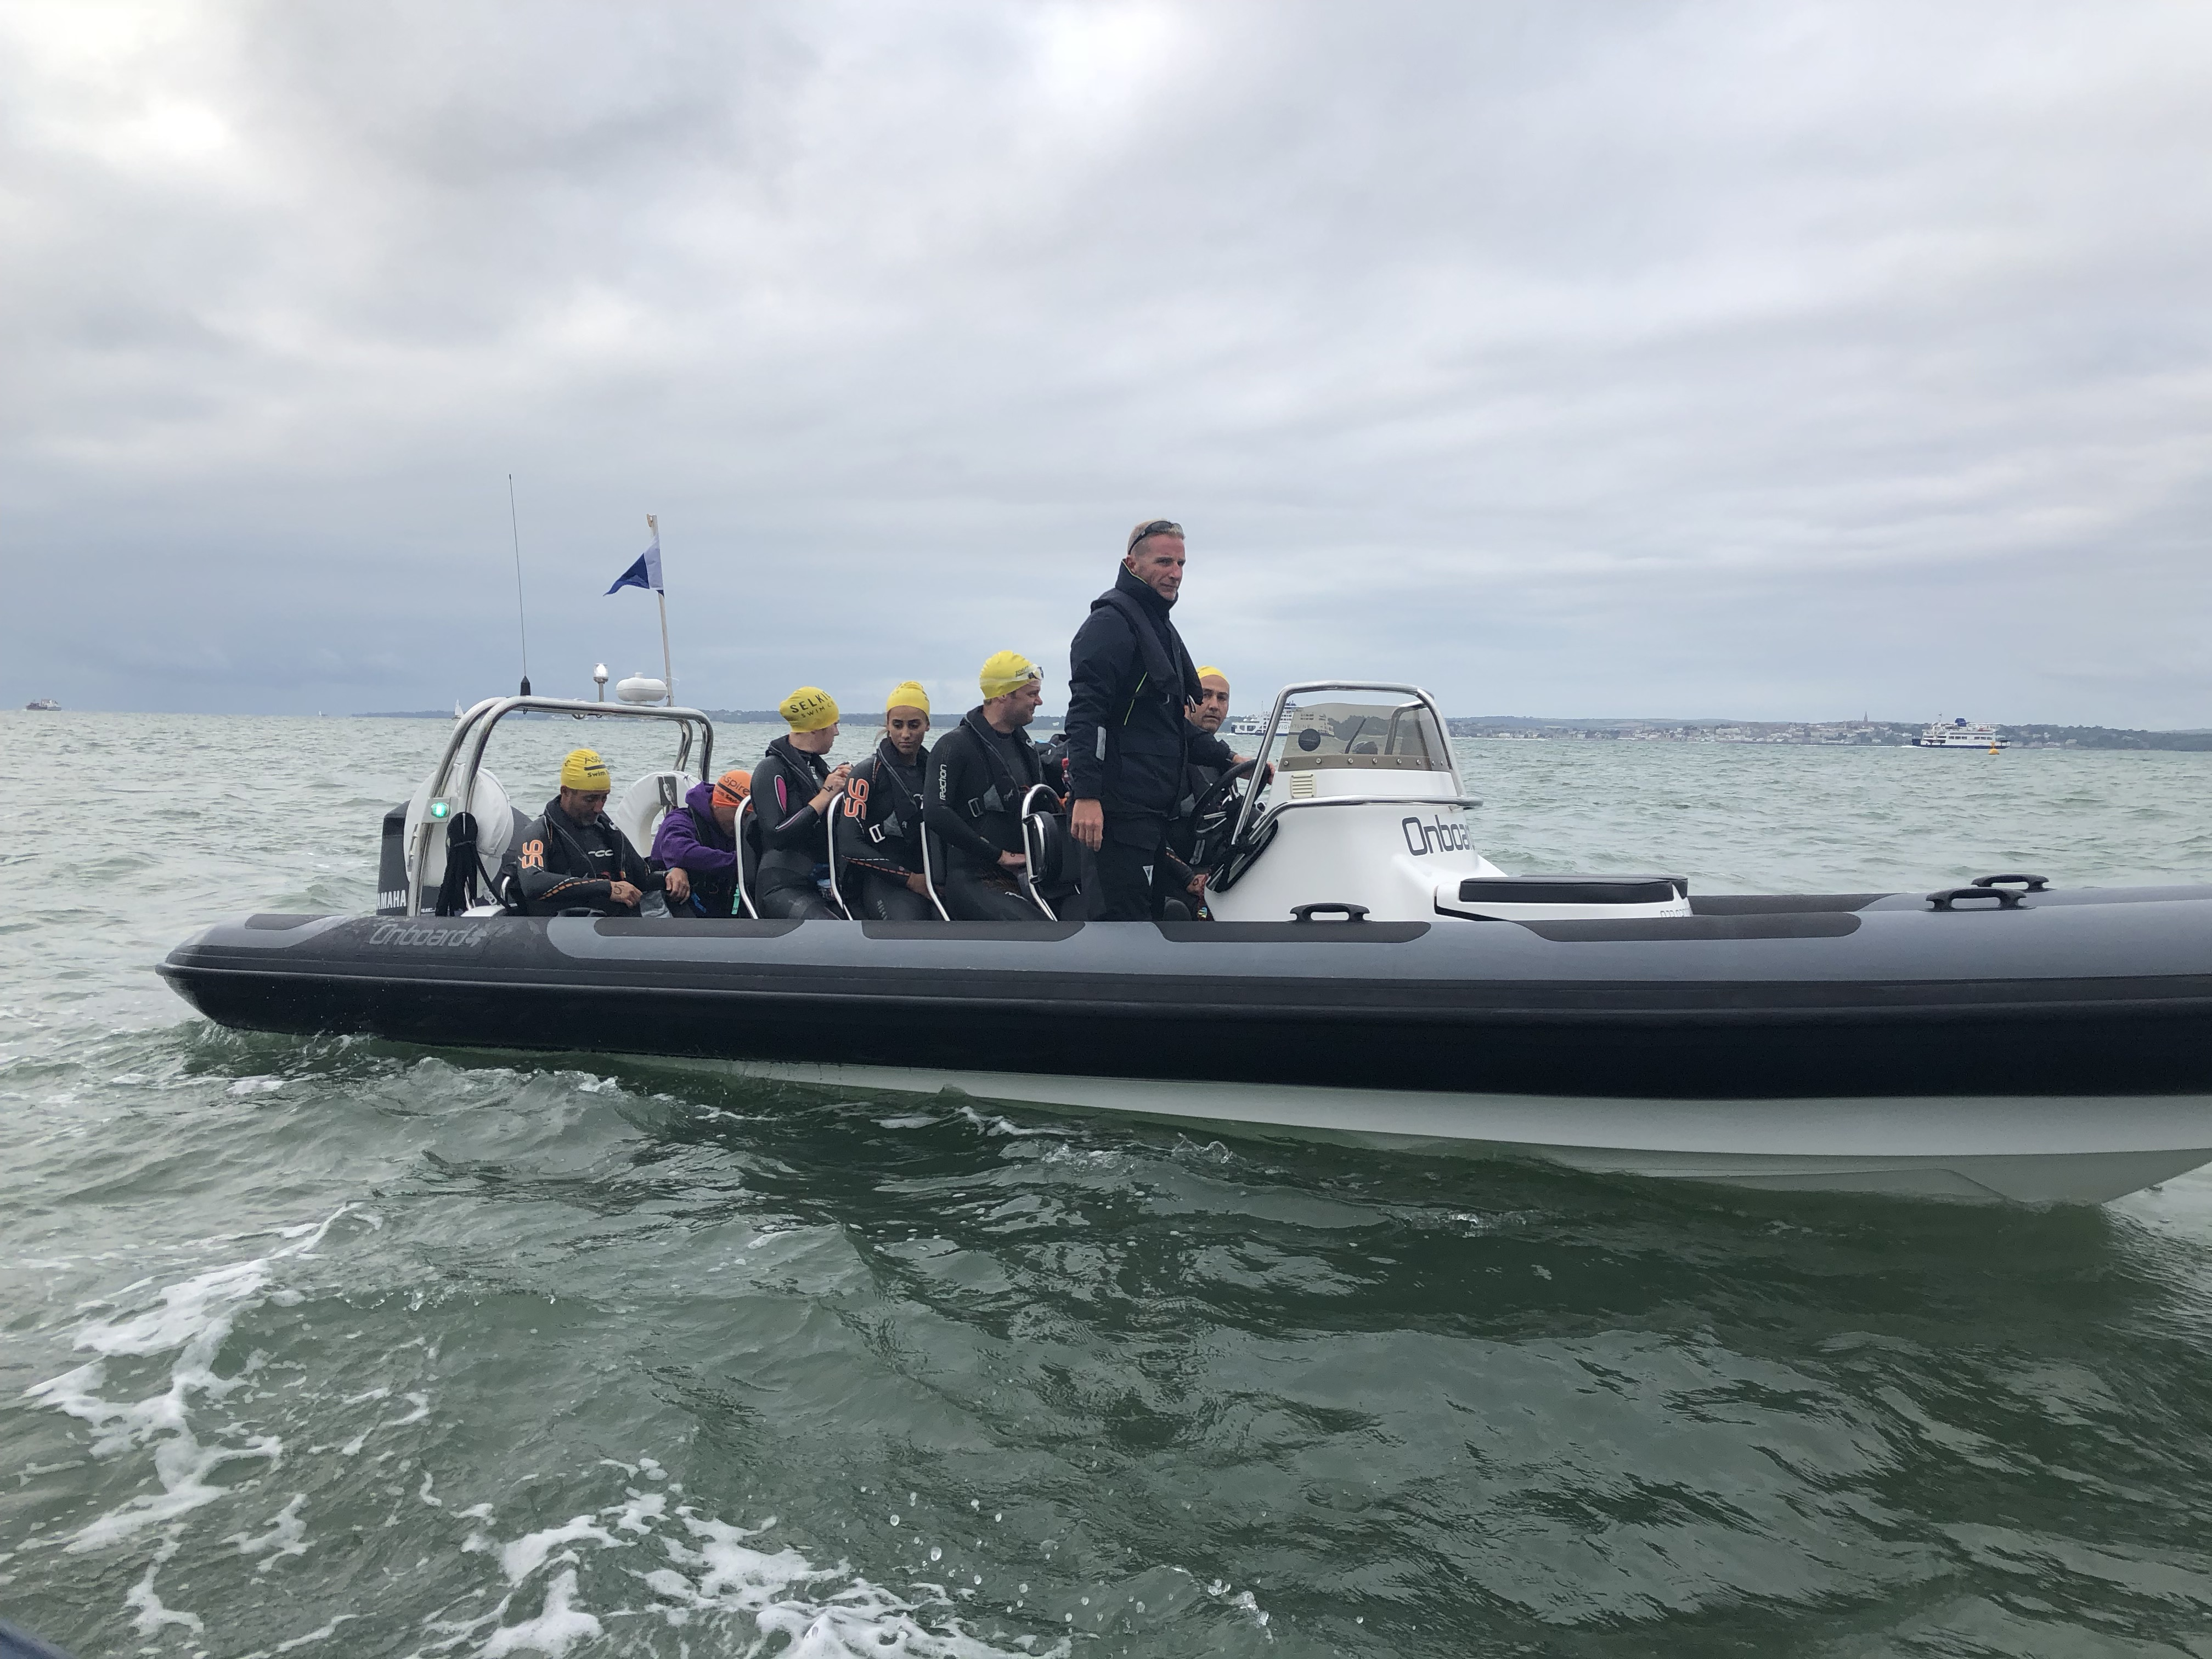 Boat nearing Gilkicker with Aspire Solent Swimmers onboard